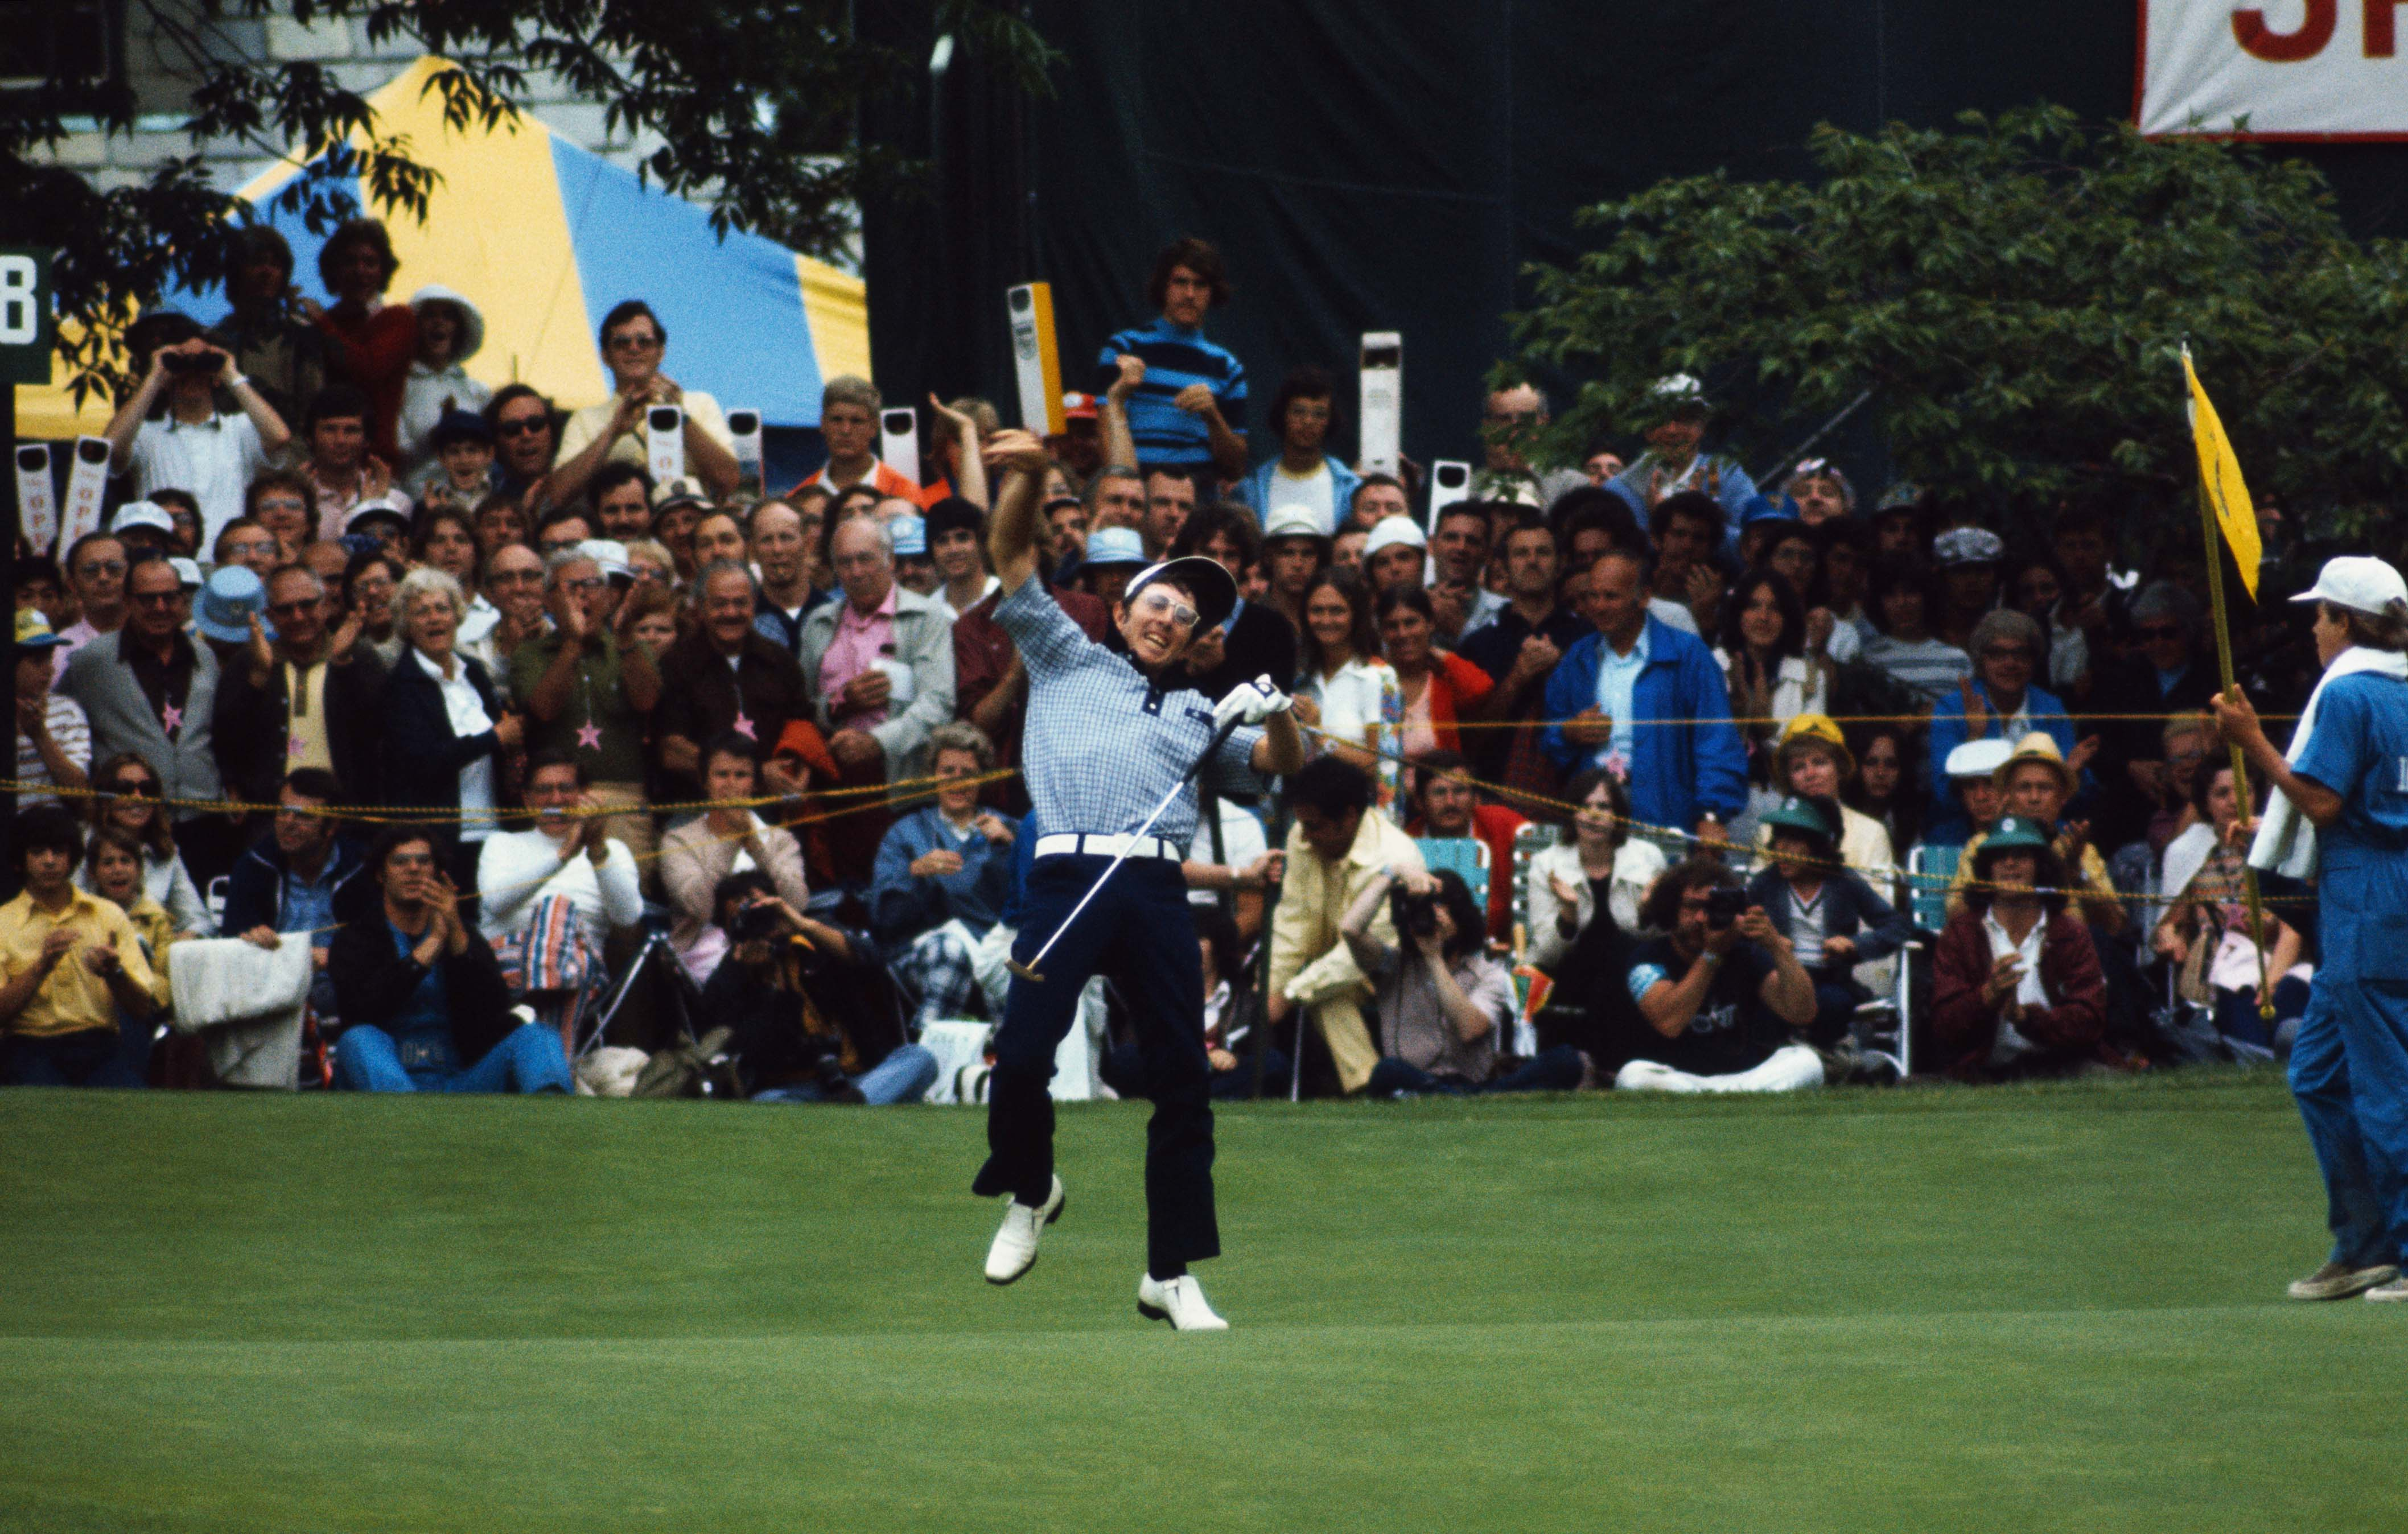 19. 1974: Rough time at Winged Foot